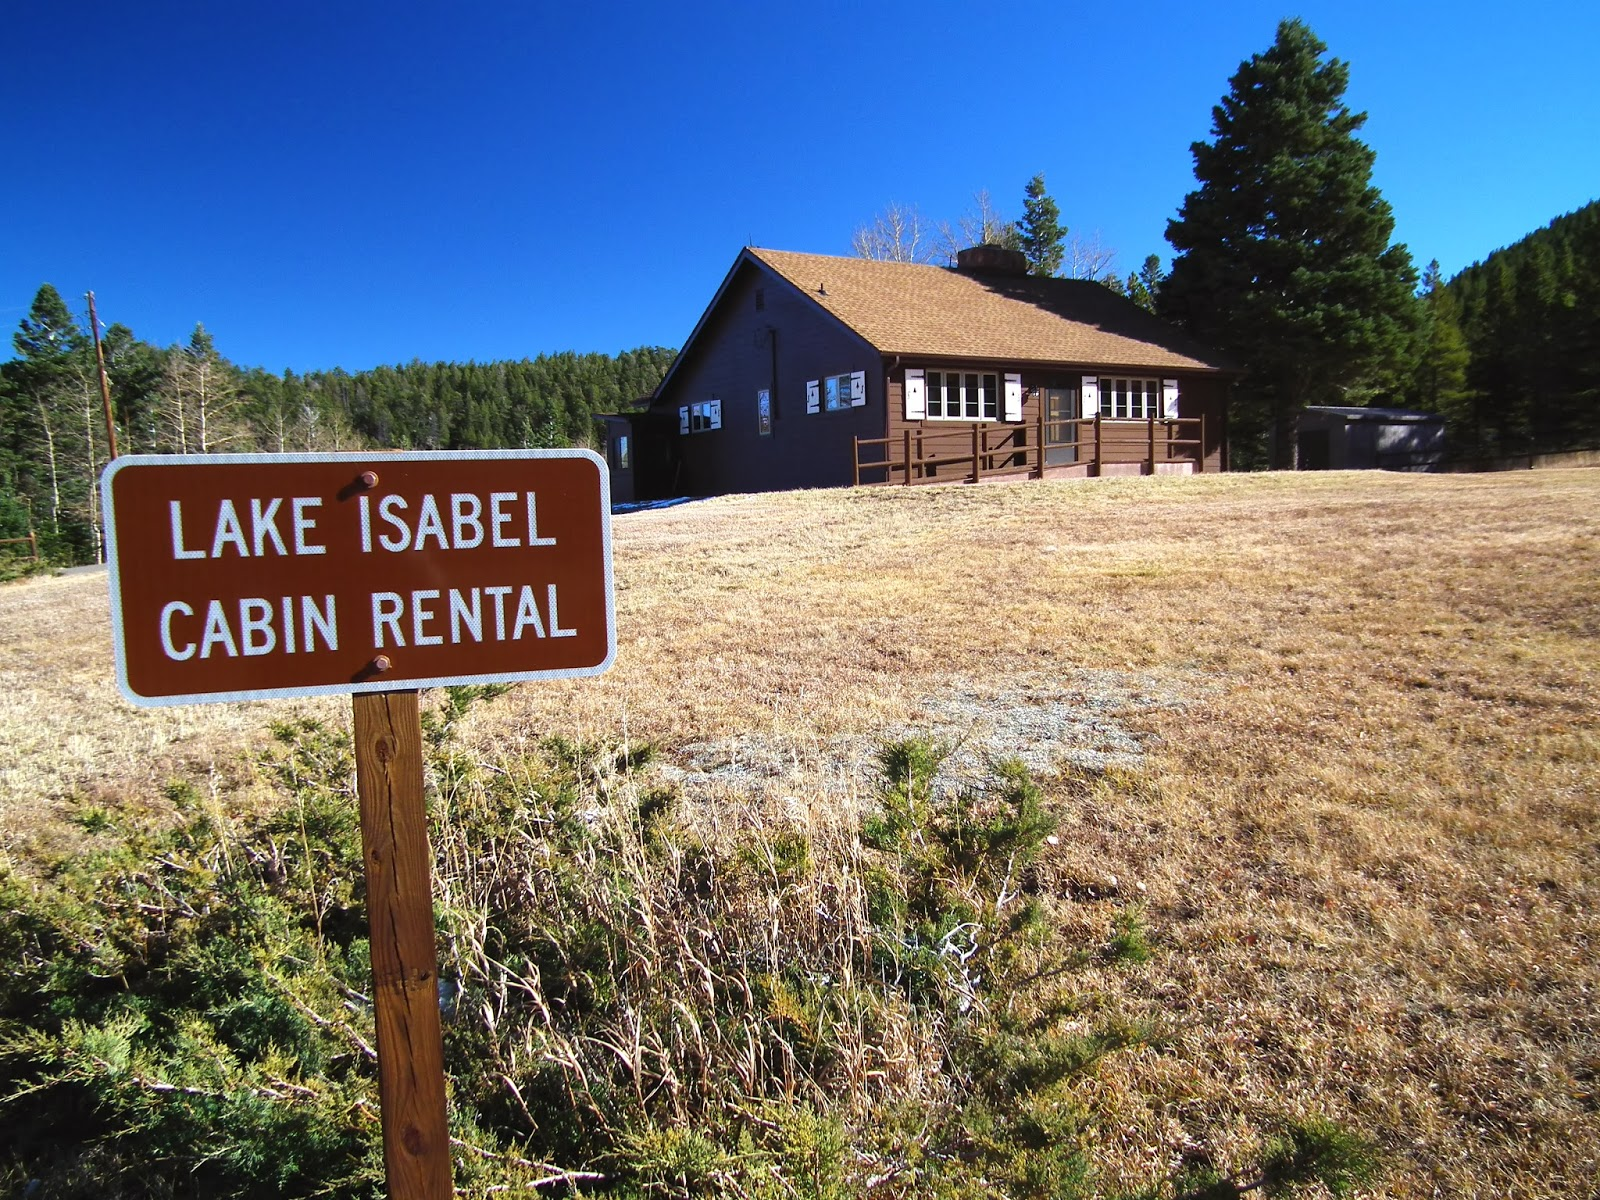 The US Forest Serviceu0027s Lake Isabel Rental Cabin Sits Across The Road From  The 40 Acre Lake And Recreational Area Built By The Civilian Conservation  Corps ...